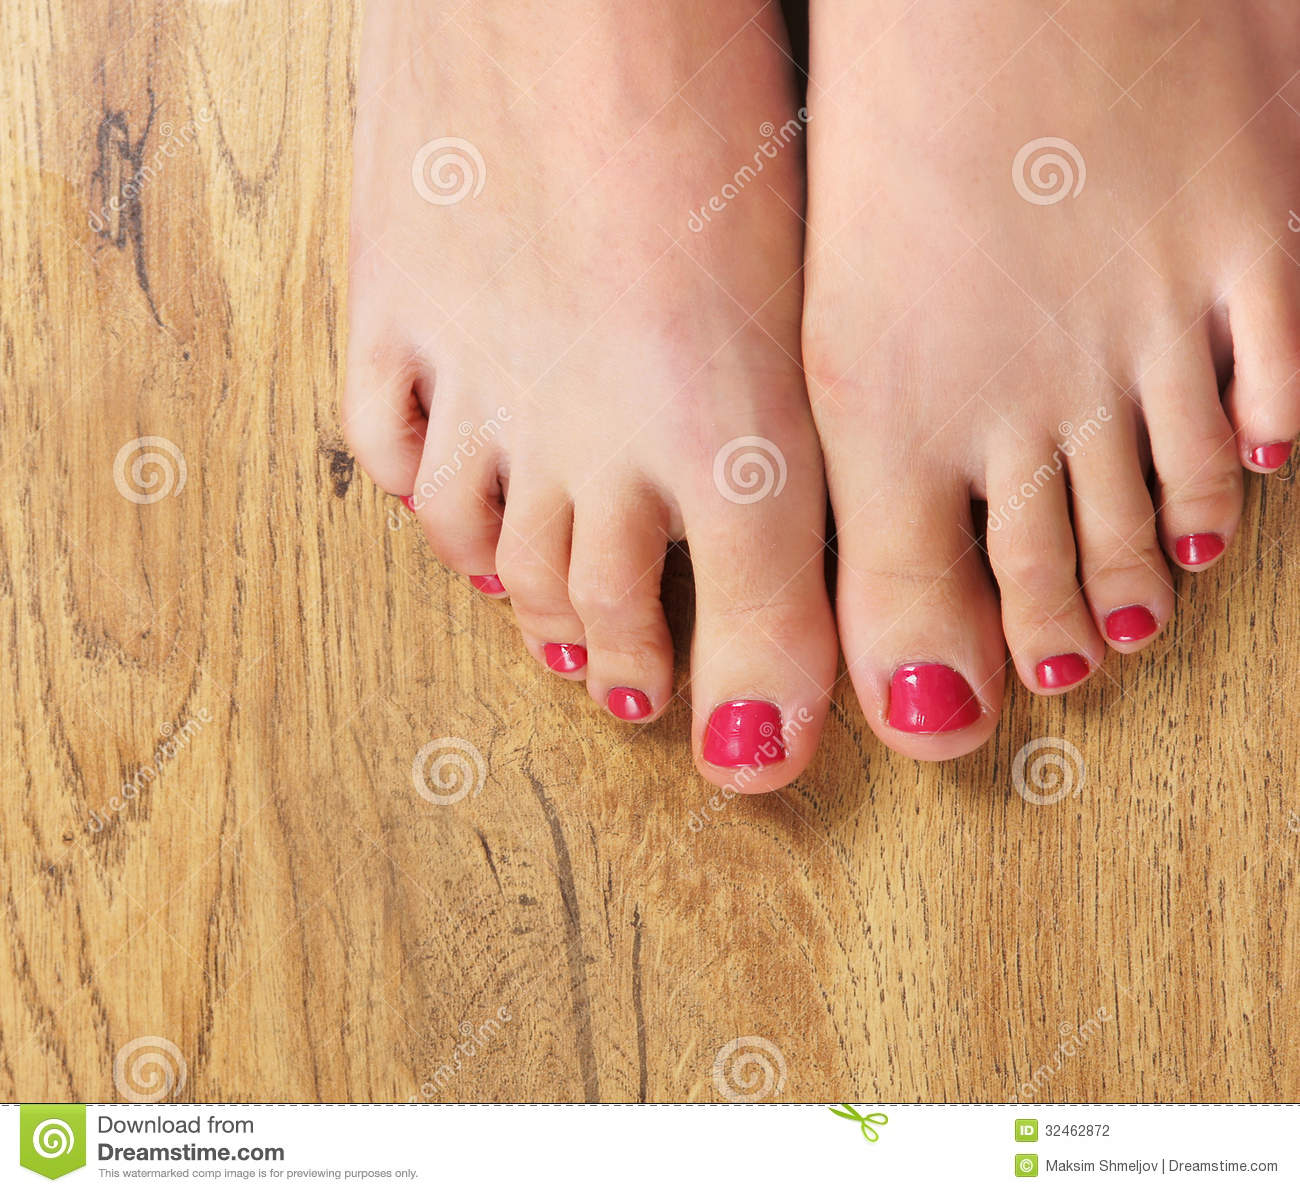 Toe Nail Salon Game For Fashion Girls Foot Nail Makeover: Spa Image Of Beautiful Female Feet With Nail Polish Stock